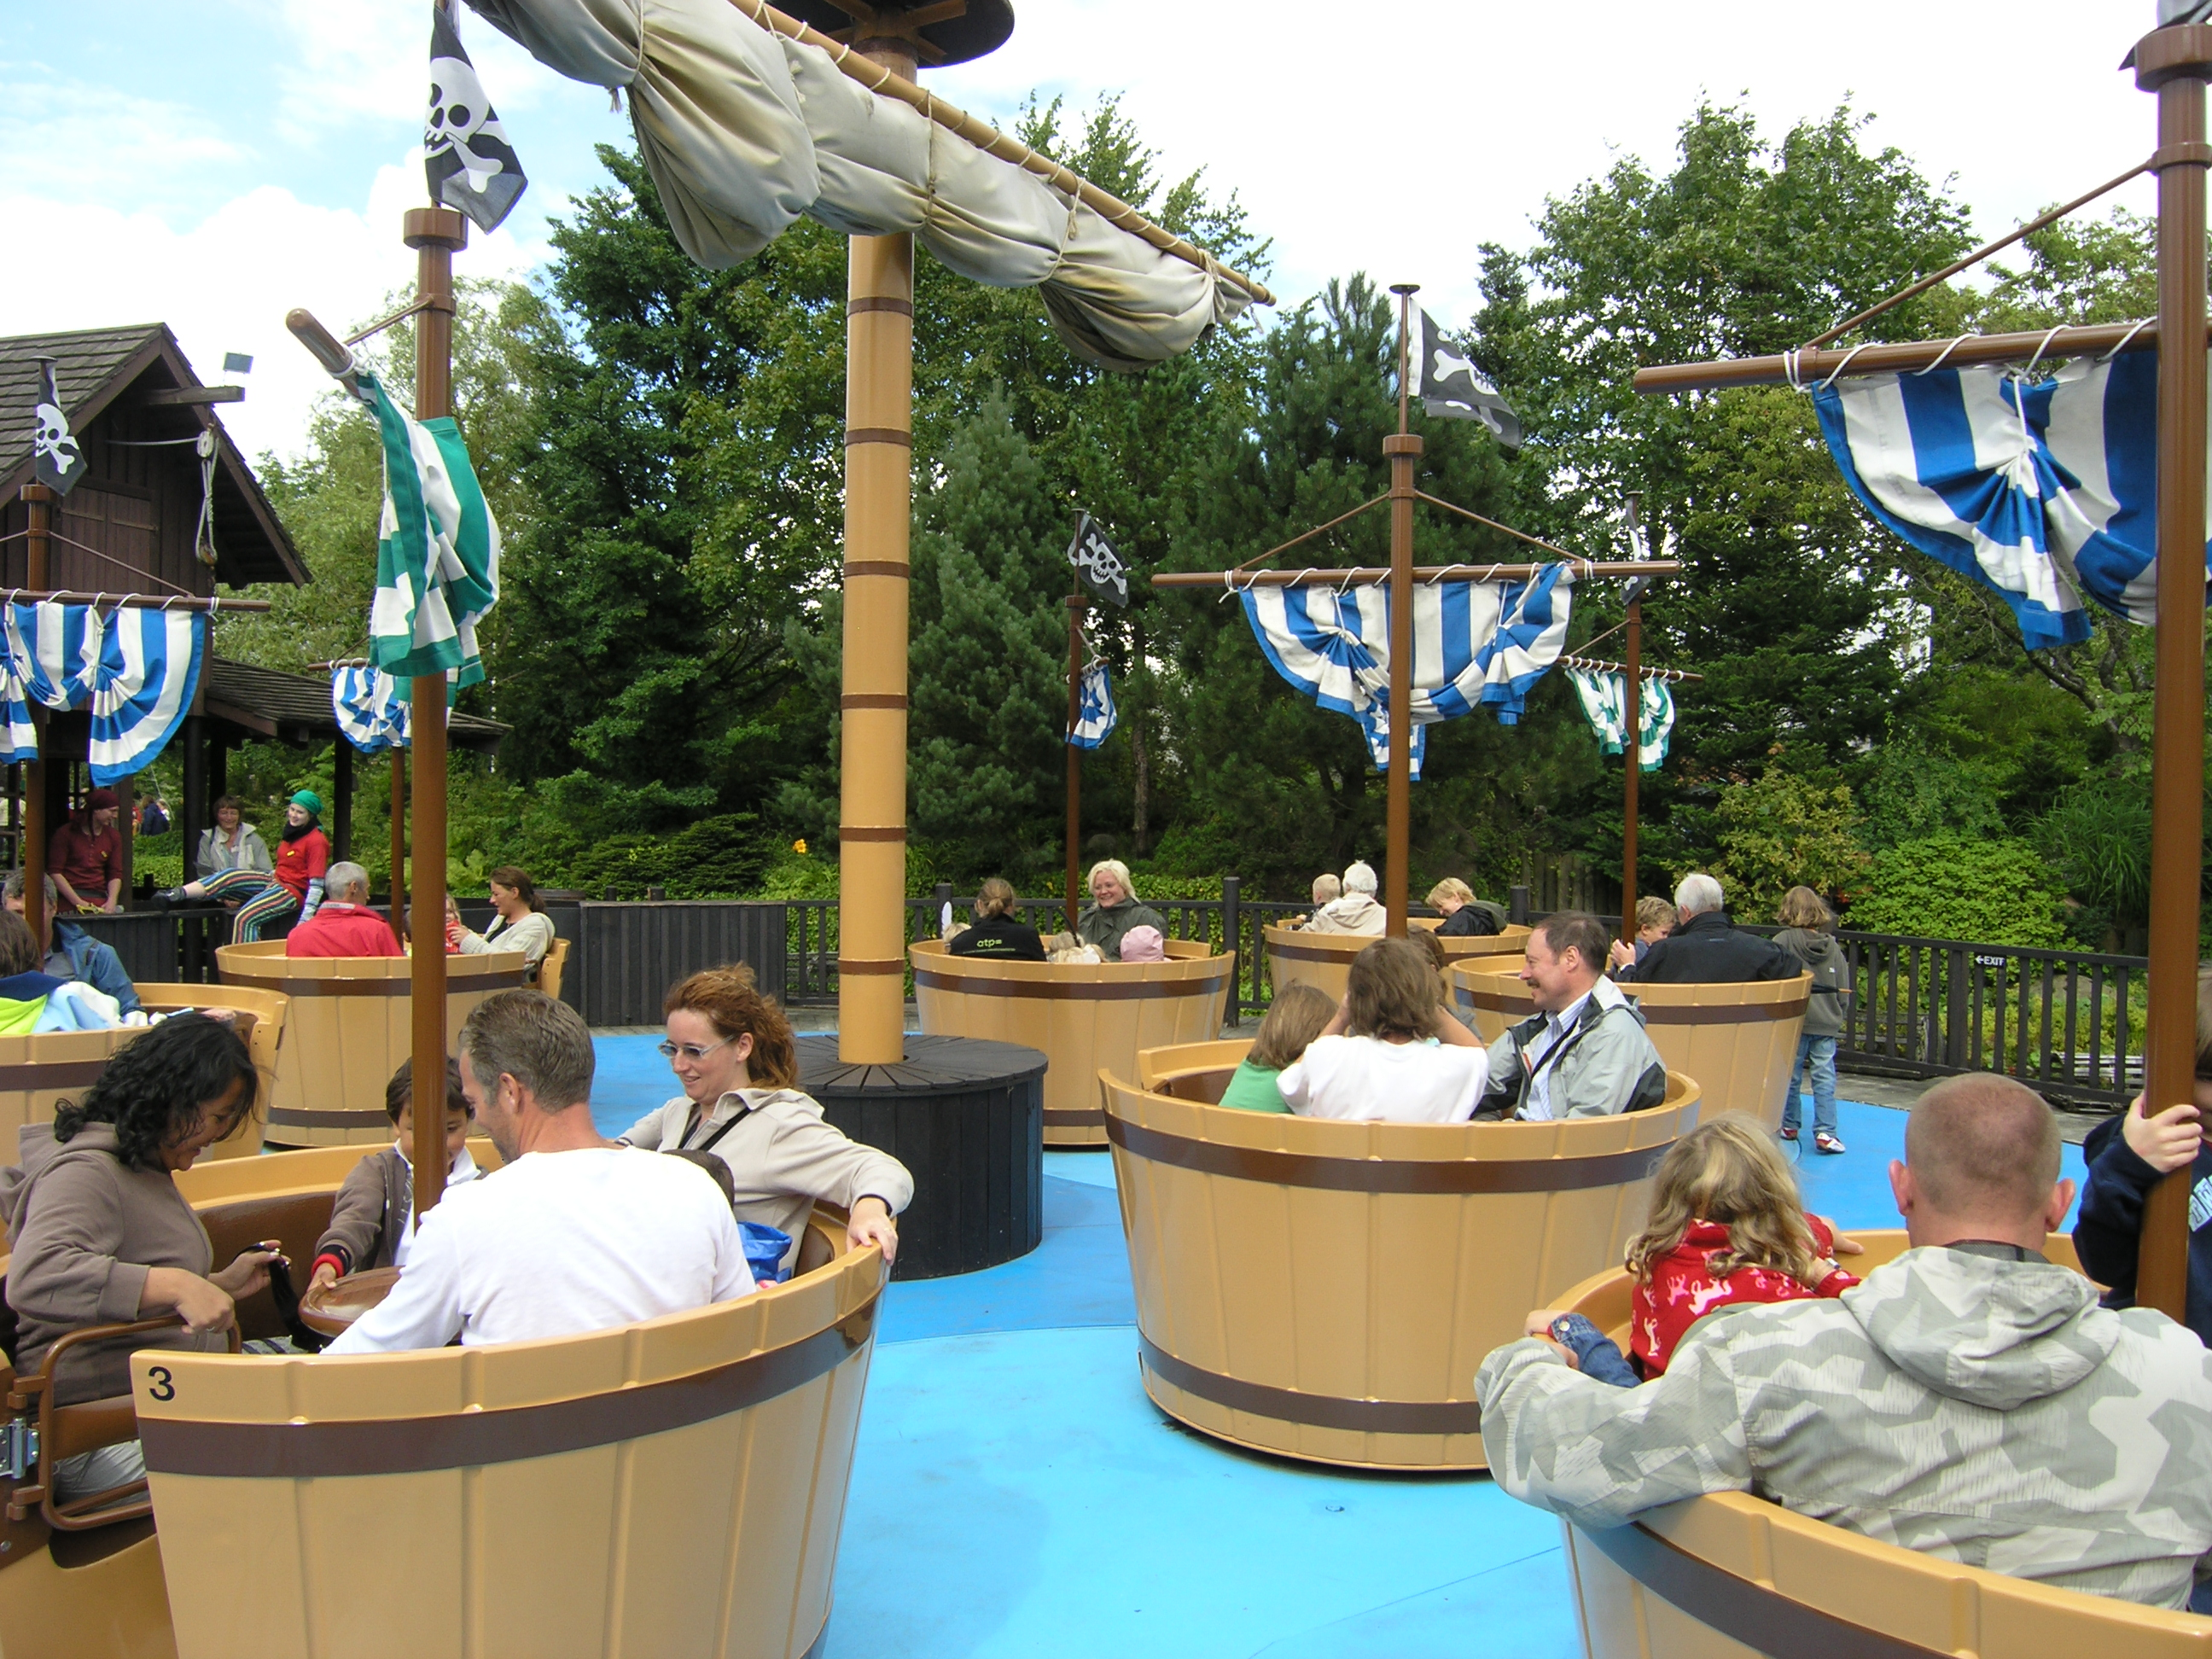 Legoland_Billund_-_Pirate_Carousel